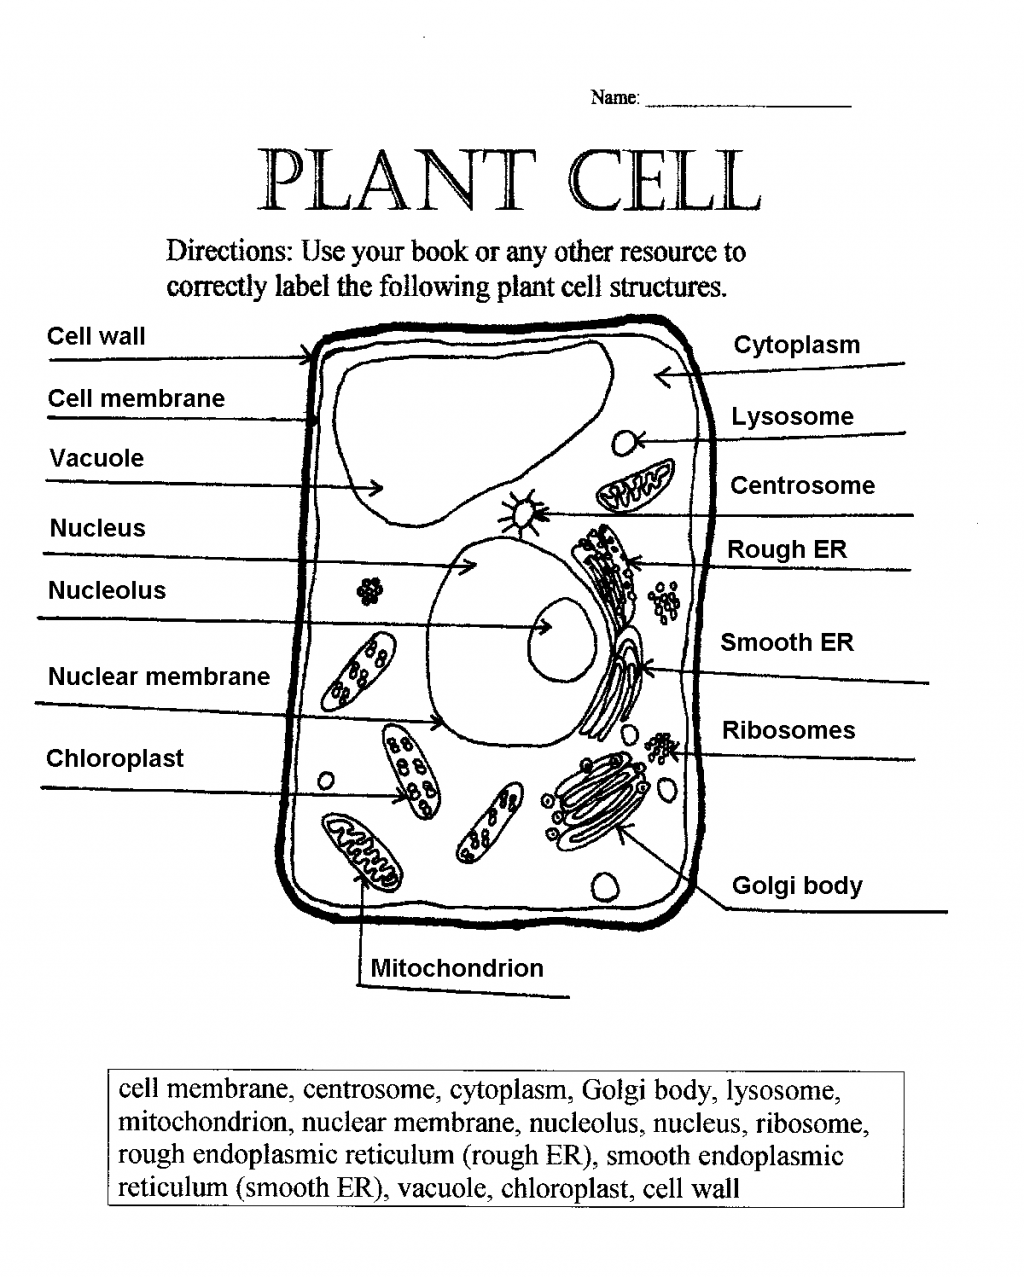 plant cell diagram Google Search (With images) Plant